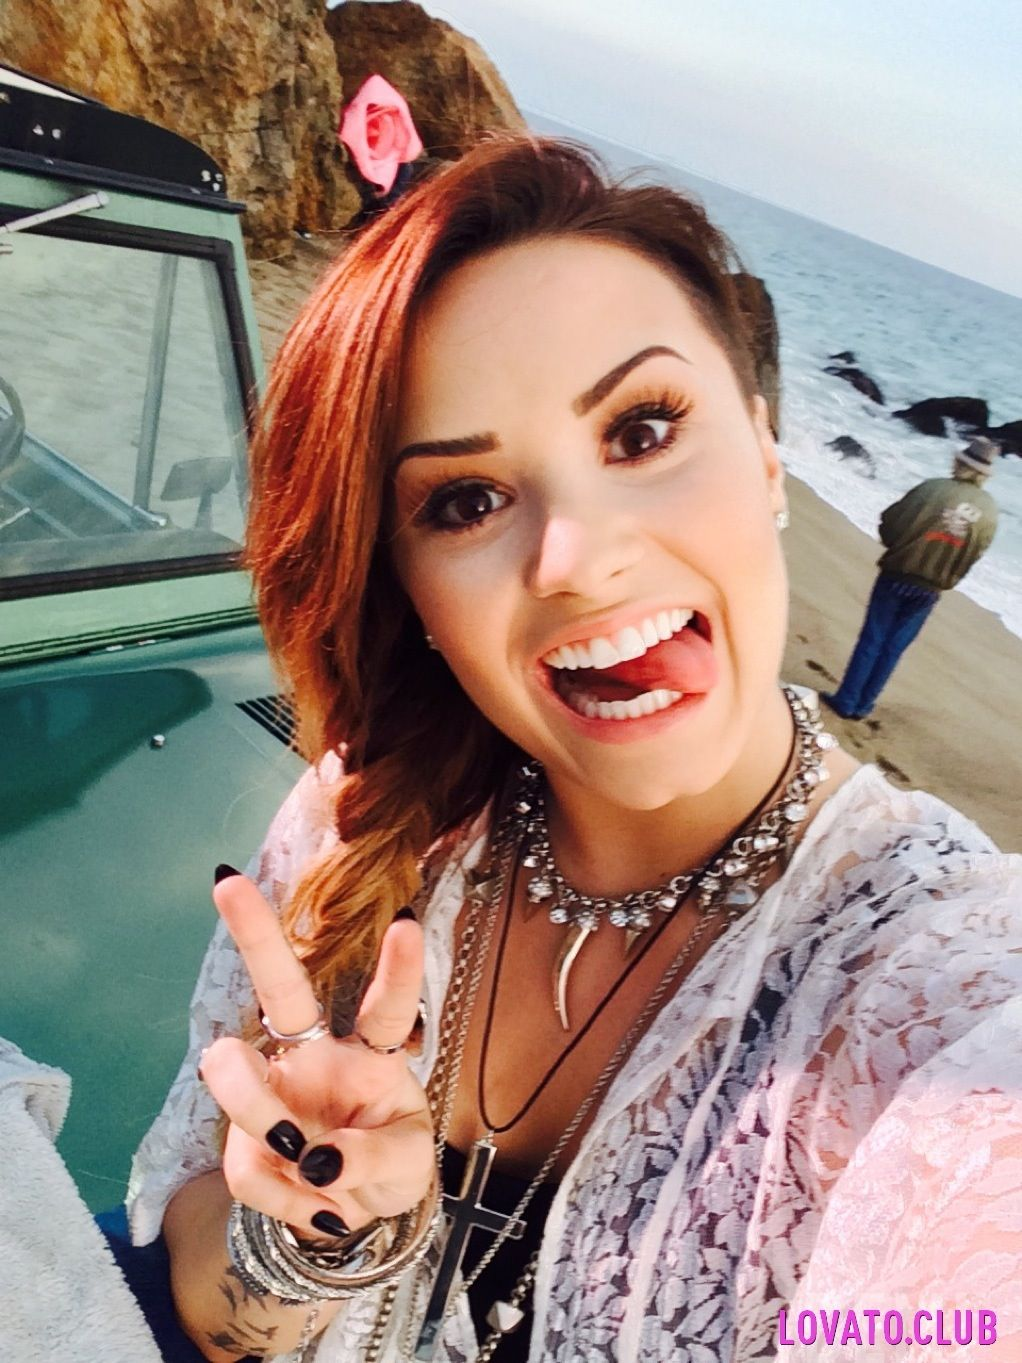 demi from somebody to you | Redes sociales |Somebody To You Demi Lovato